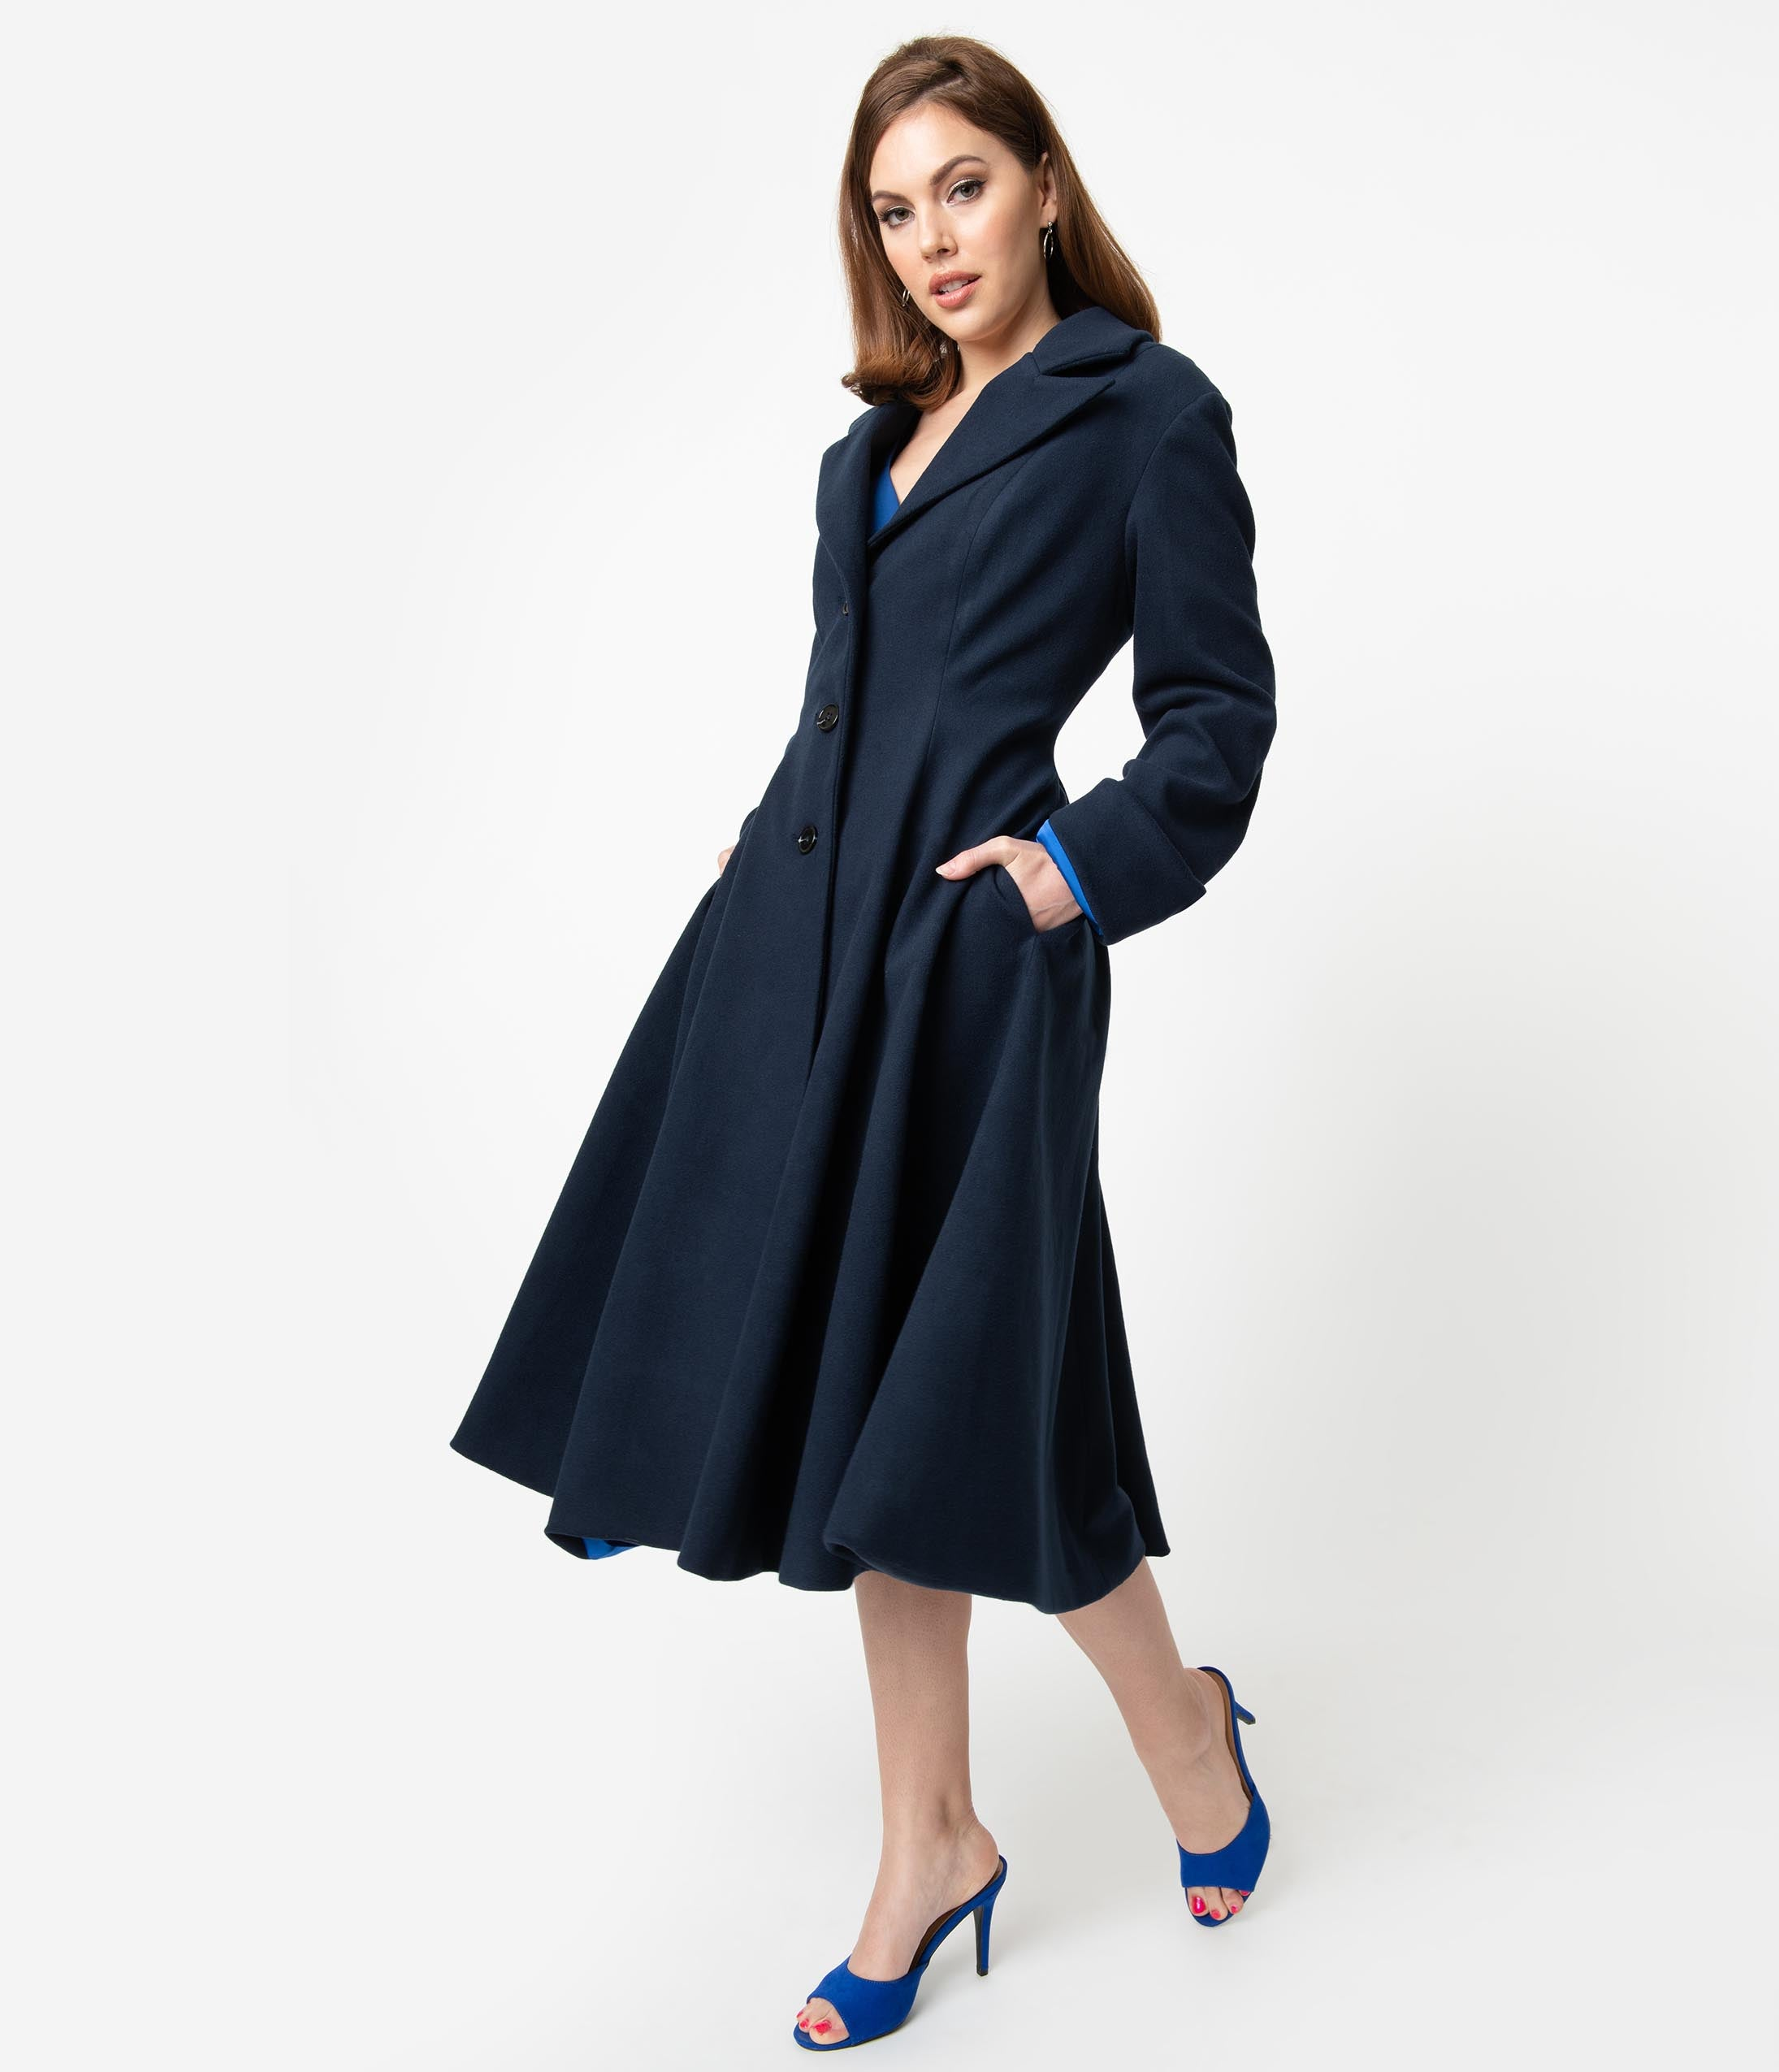 Vintage Coats & Jackets | Retro Coats and Jackets Micheline Pitt For Unique Vintage 1950S Style Navy Blue Neo-Noir Swing Coat $228.00 AT vintagedancer.com